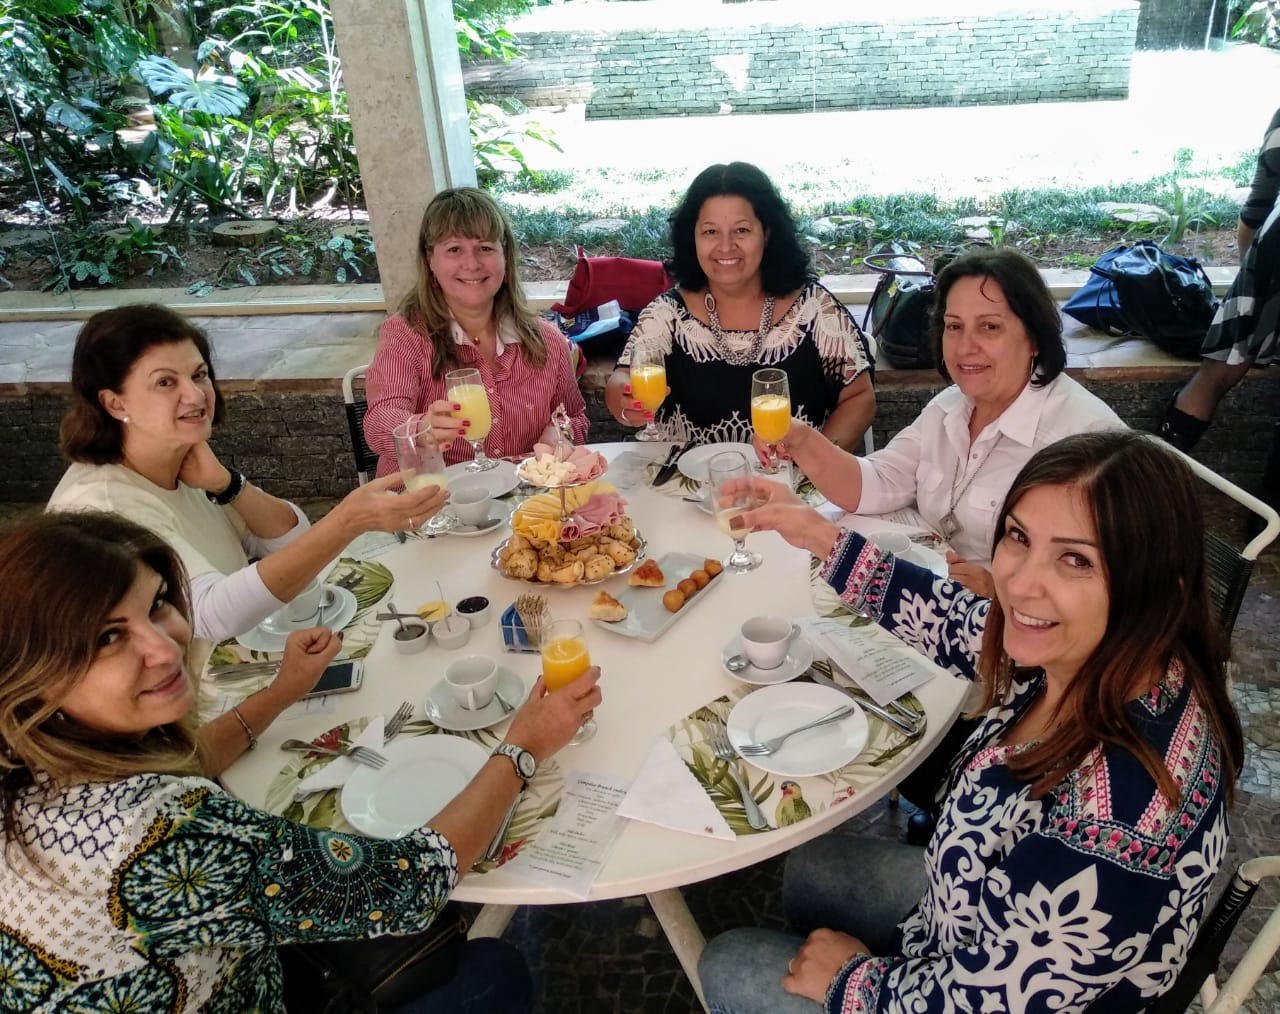 Brunch-CursoIngles-05-12-18 (6).jpeg